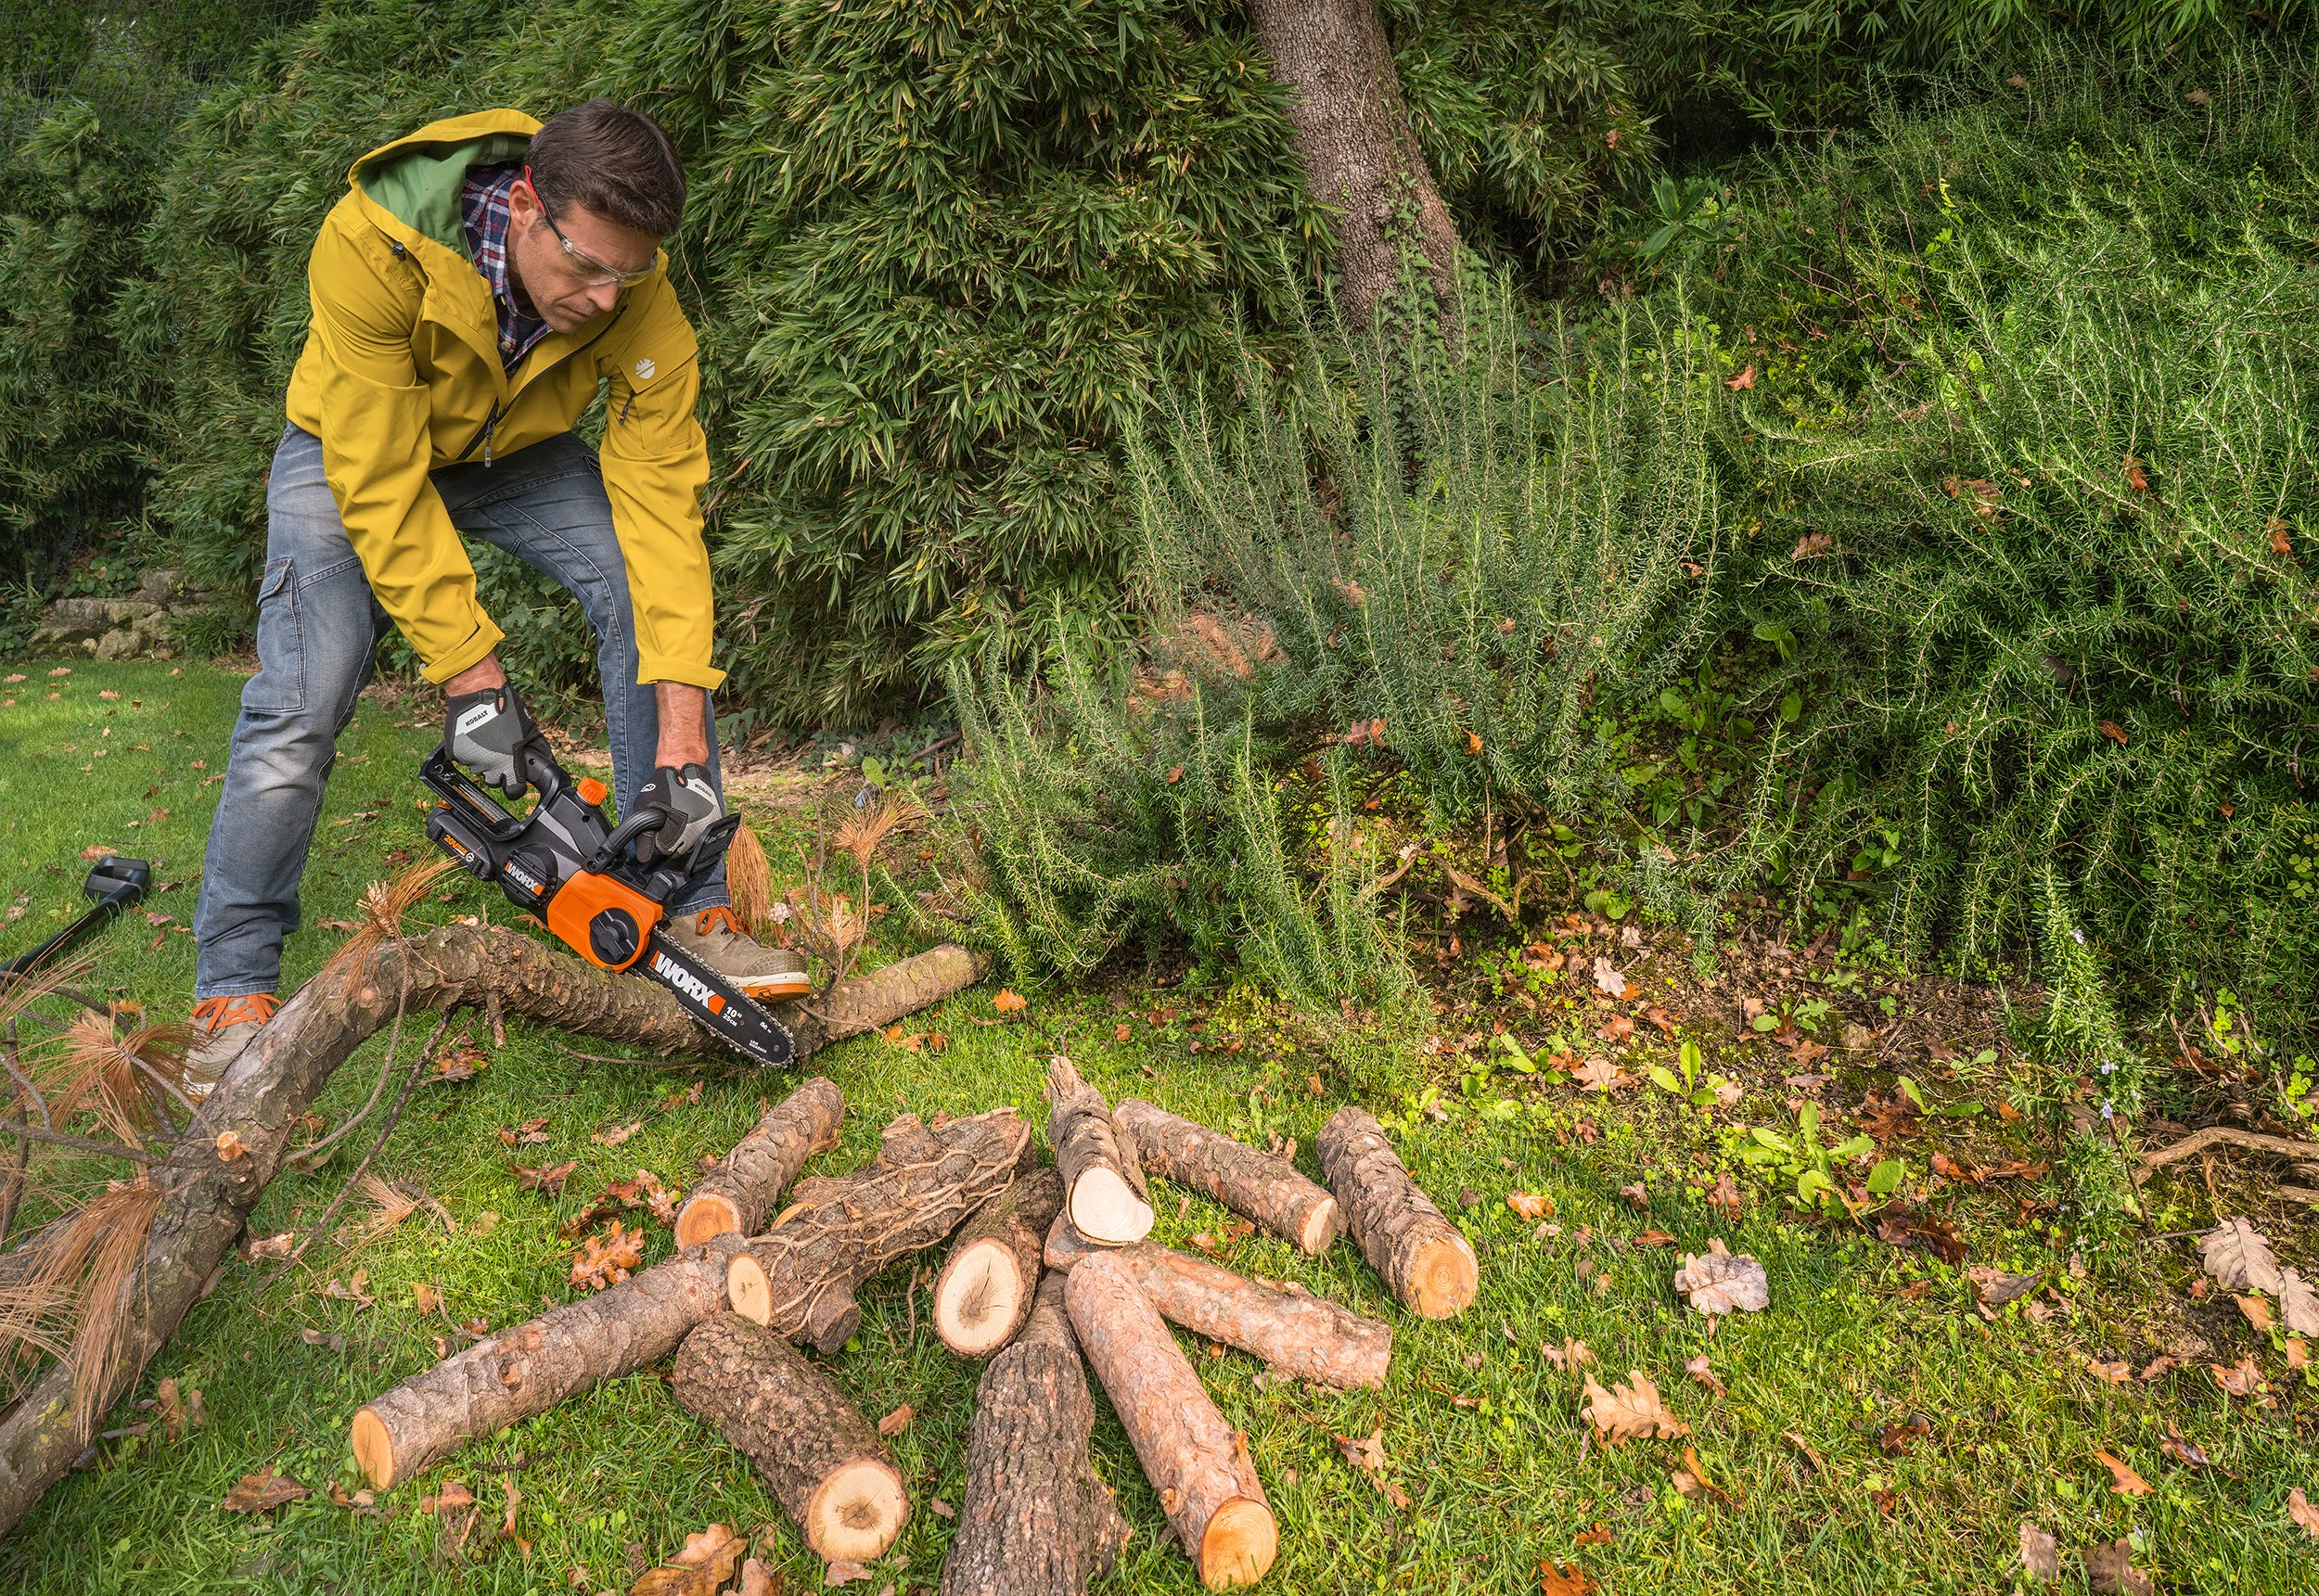 Worx_WG322_Chainsaw_ManCuttingLogs